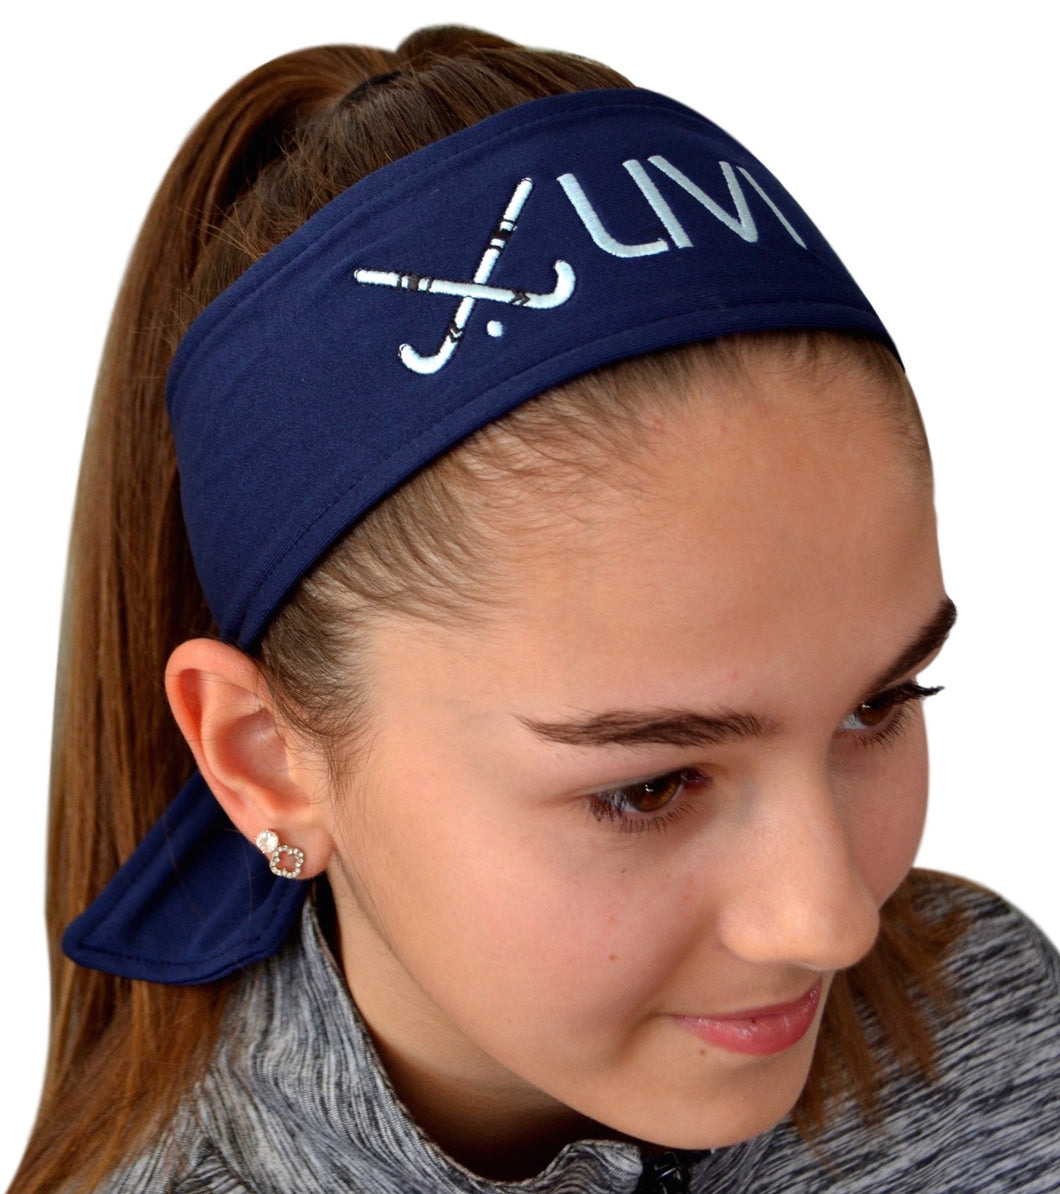 Field Hockey Tie Back Moisture Wicking Headband Personalized with Your EMBROIDERED Text - Quantity Discounts